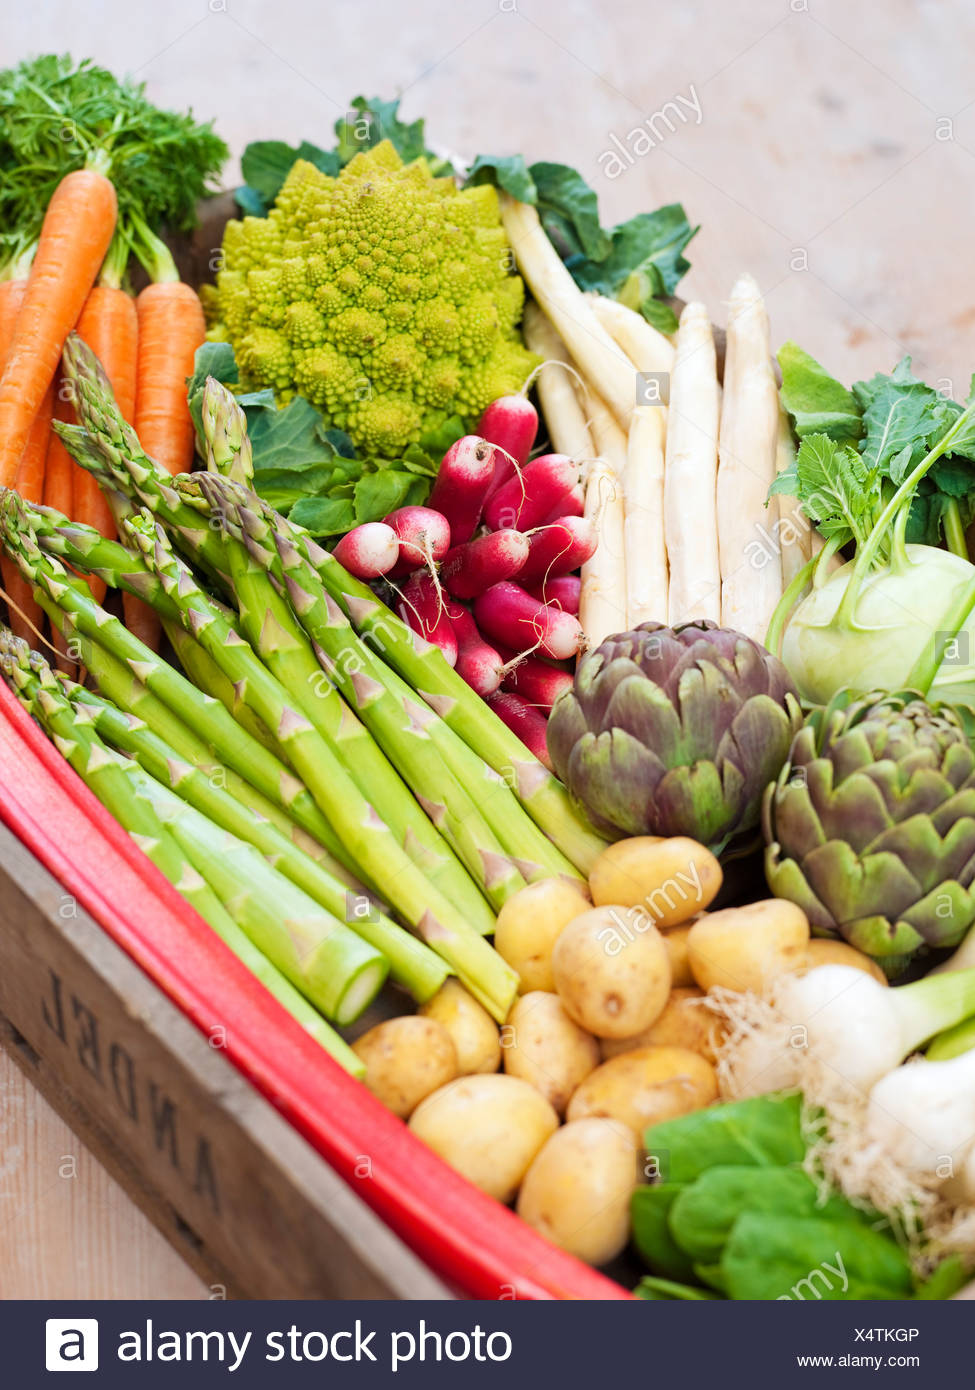 Basket full of vegetables - Stock Image